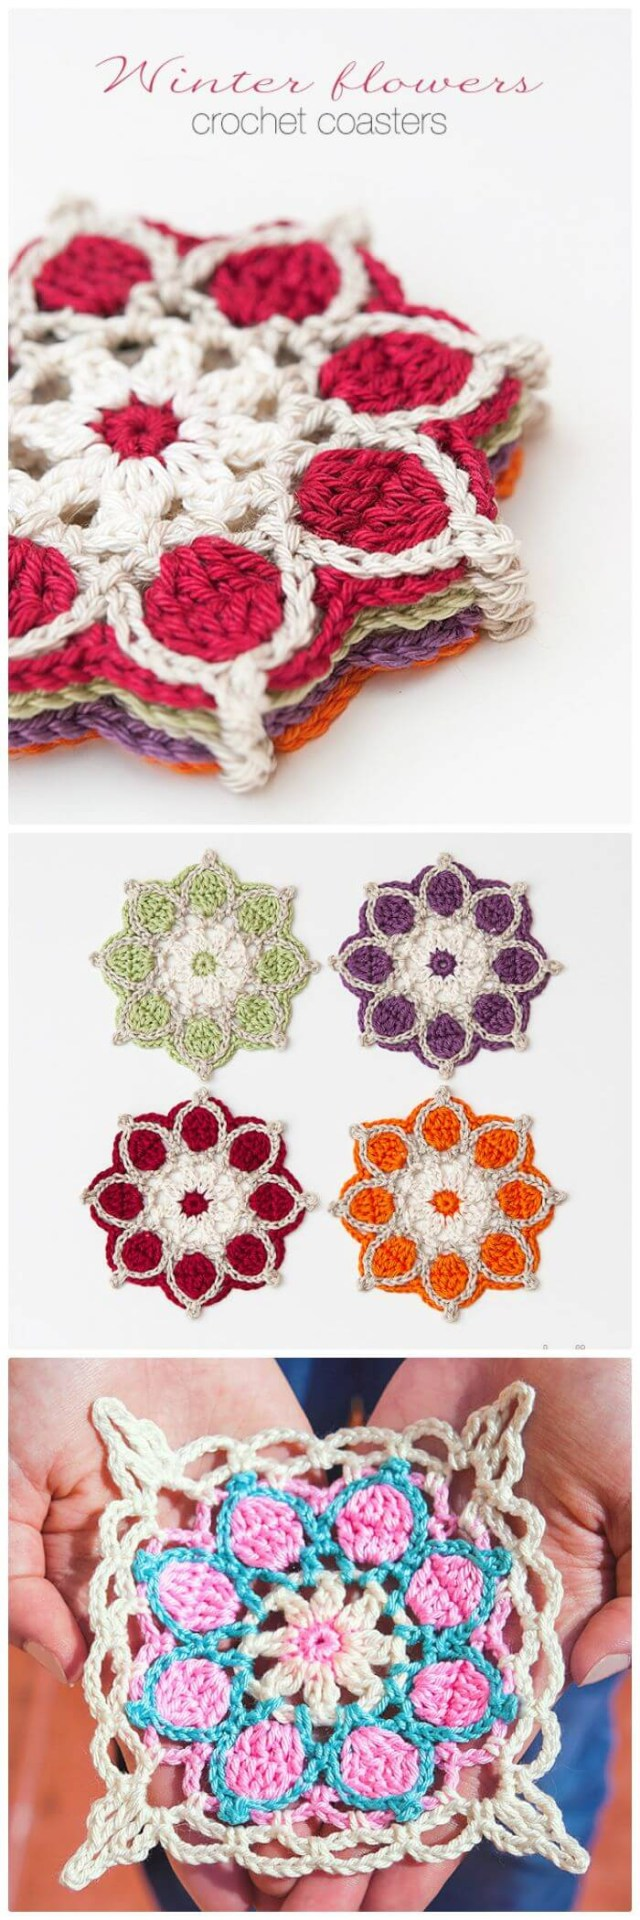 Coaster Crochet Pattern 70 Easy Free Crochet Coaster Patterns For Beginners Diy Crafts